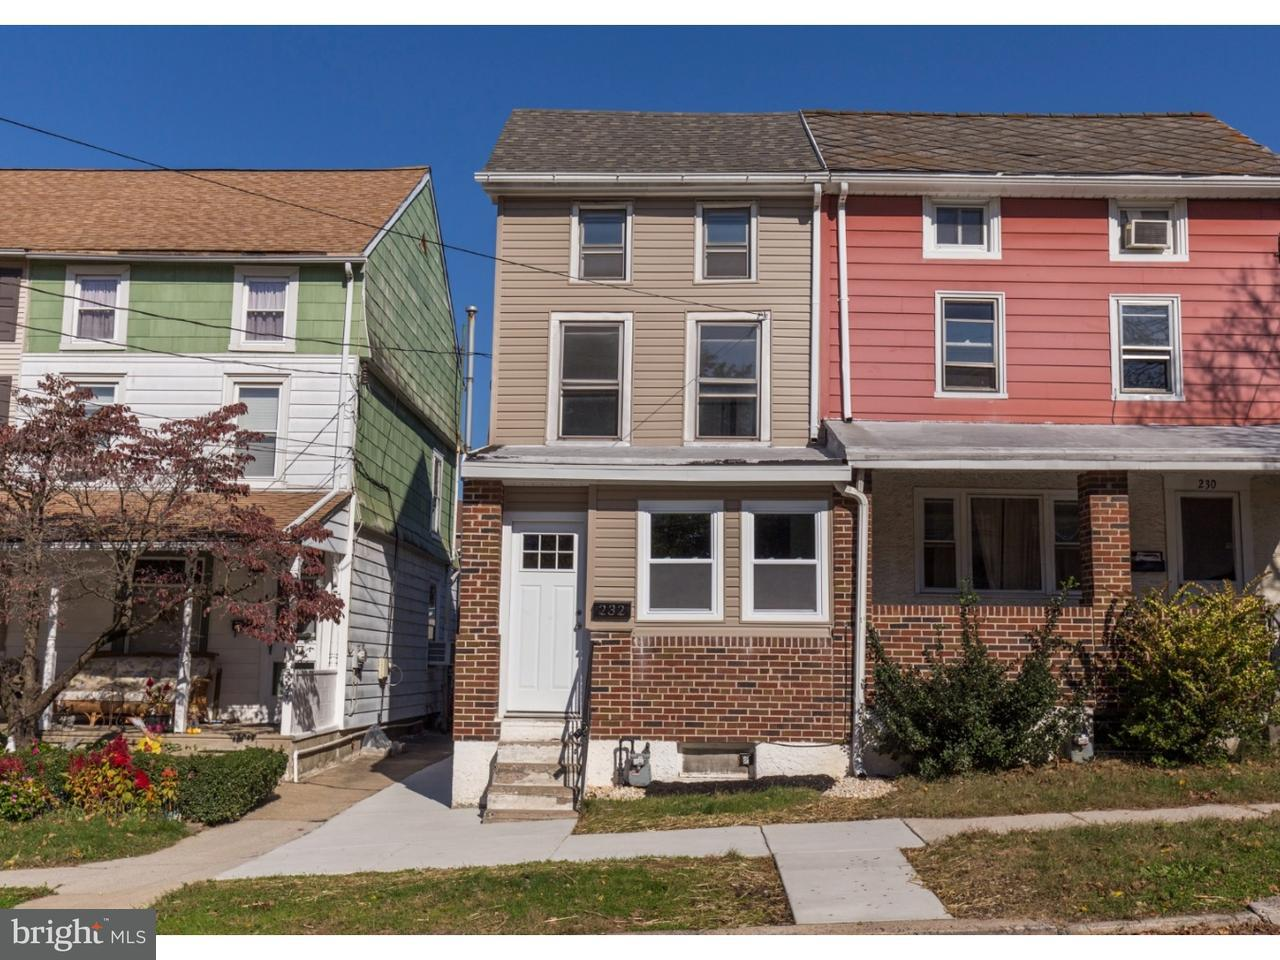 Townhouse for Sale at 232 W 5TH Avenue Conshohocken, Pennsylvania 19428 United States